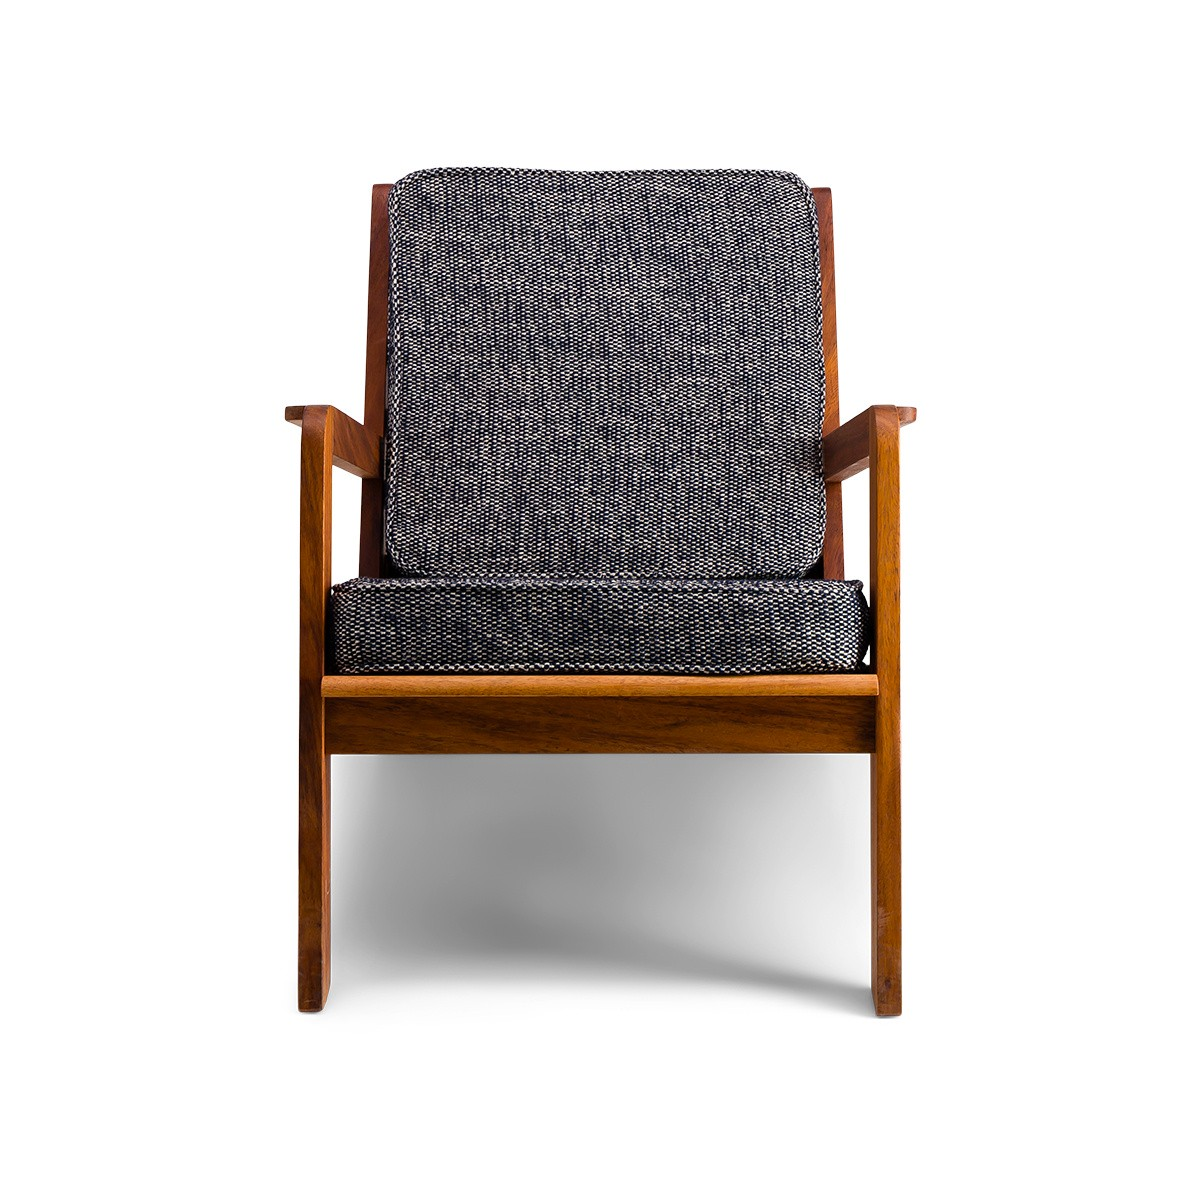 Gloria Fireside Chair in Brown Wood with Navy Blue Textured Fabric